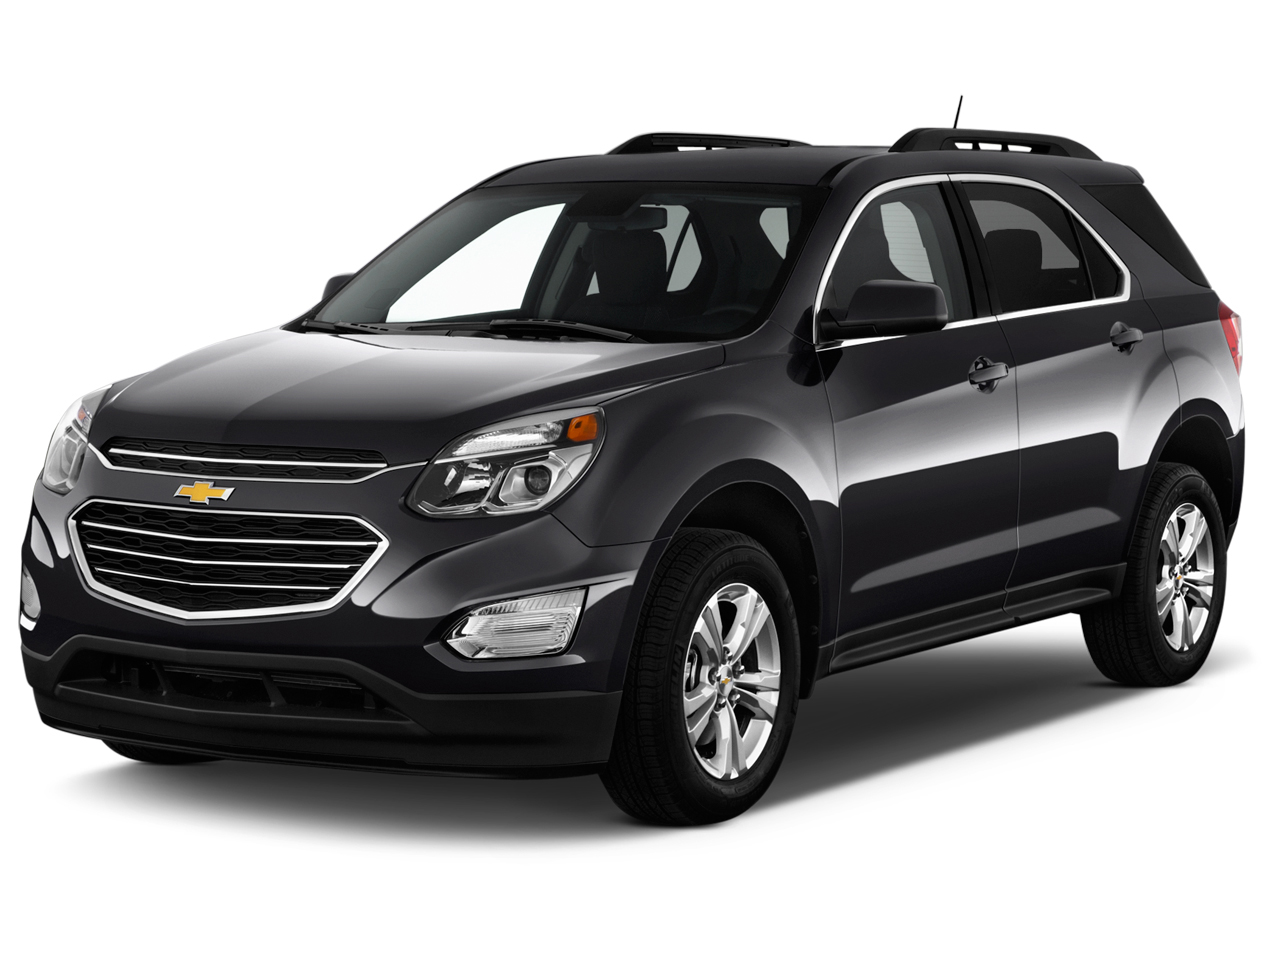 chevrolet equinox vs gmc terrain compare cars. Black Bedroom Furniture Sets. Home Design Ideas